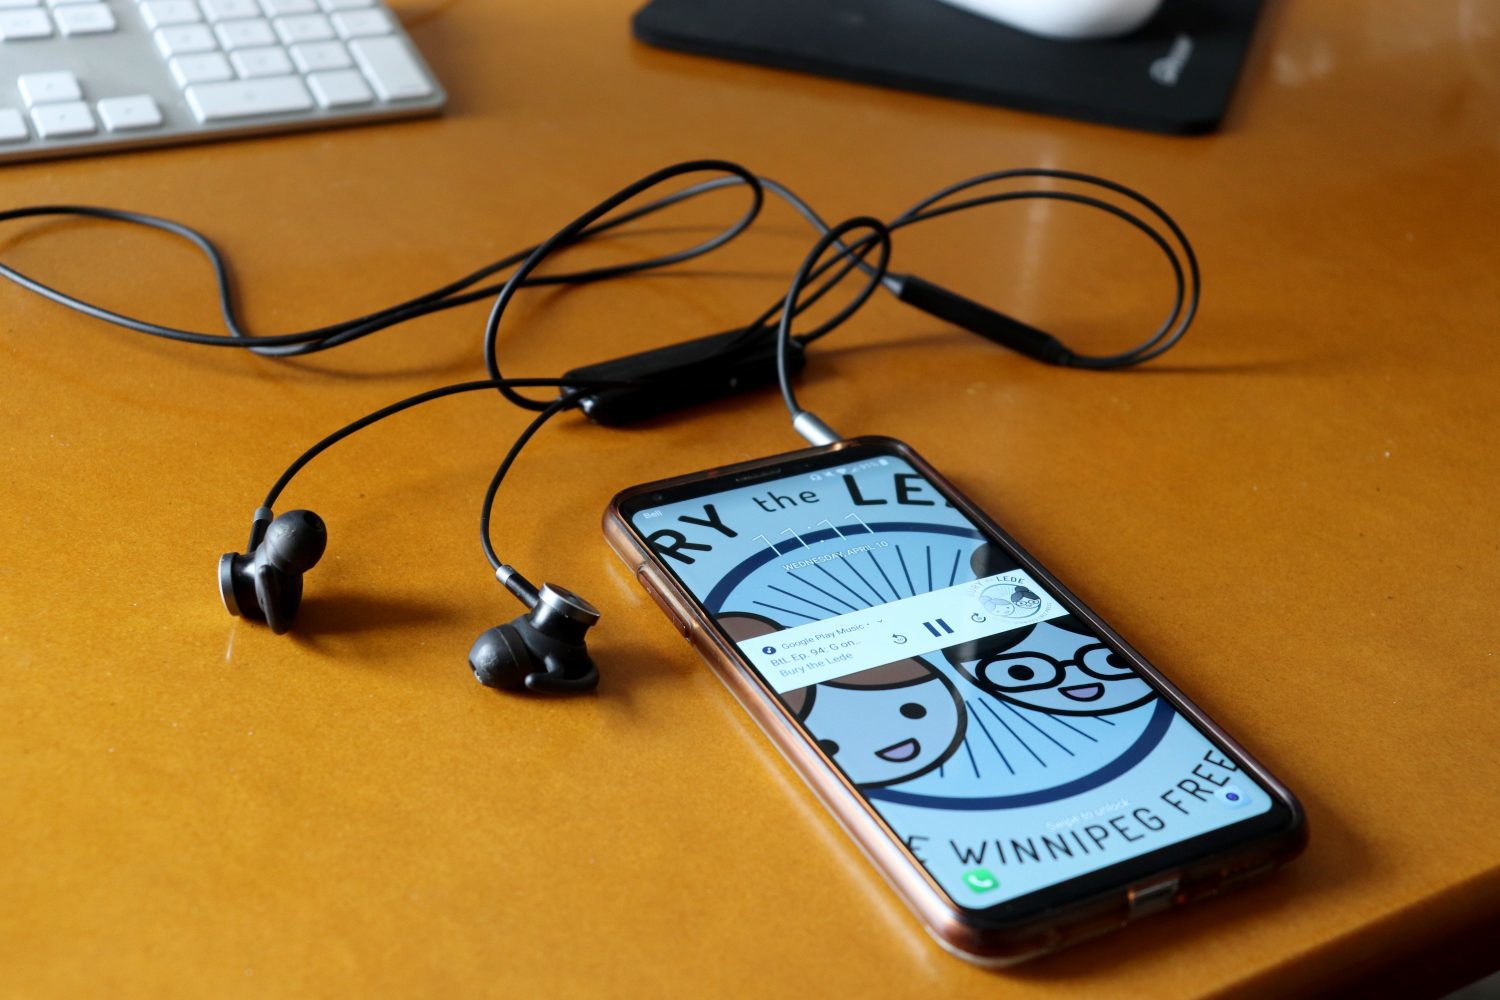 Smartphone with Bury the Lede open and earbud headphones on a computer desk